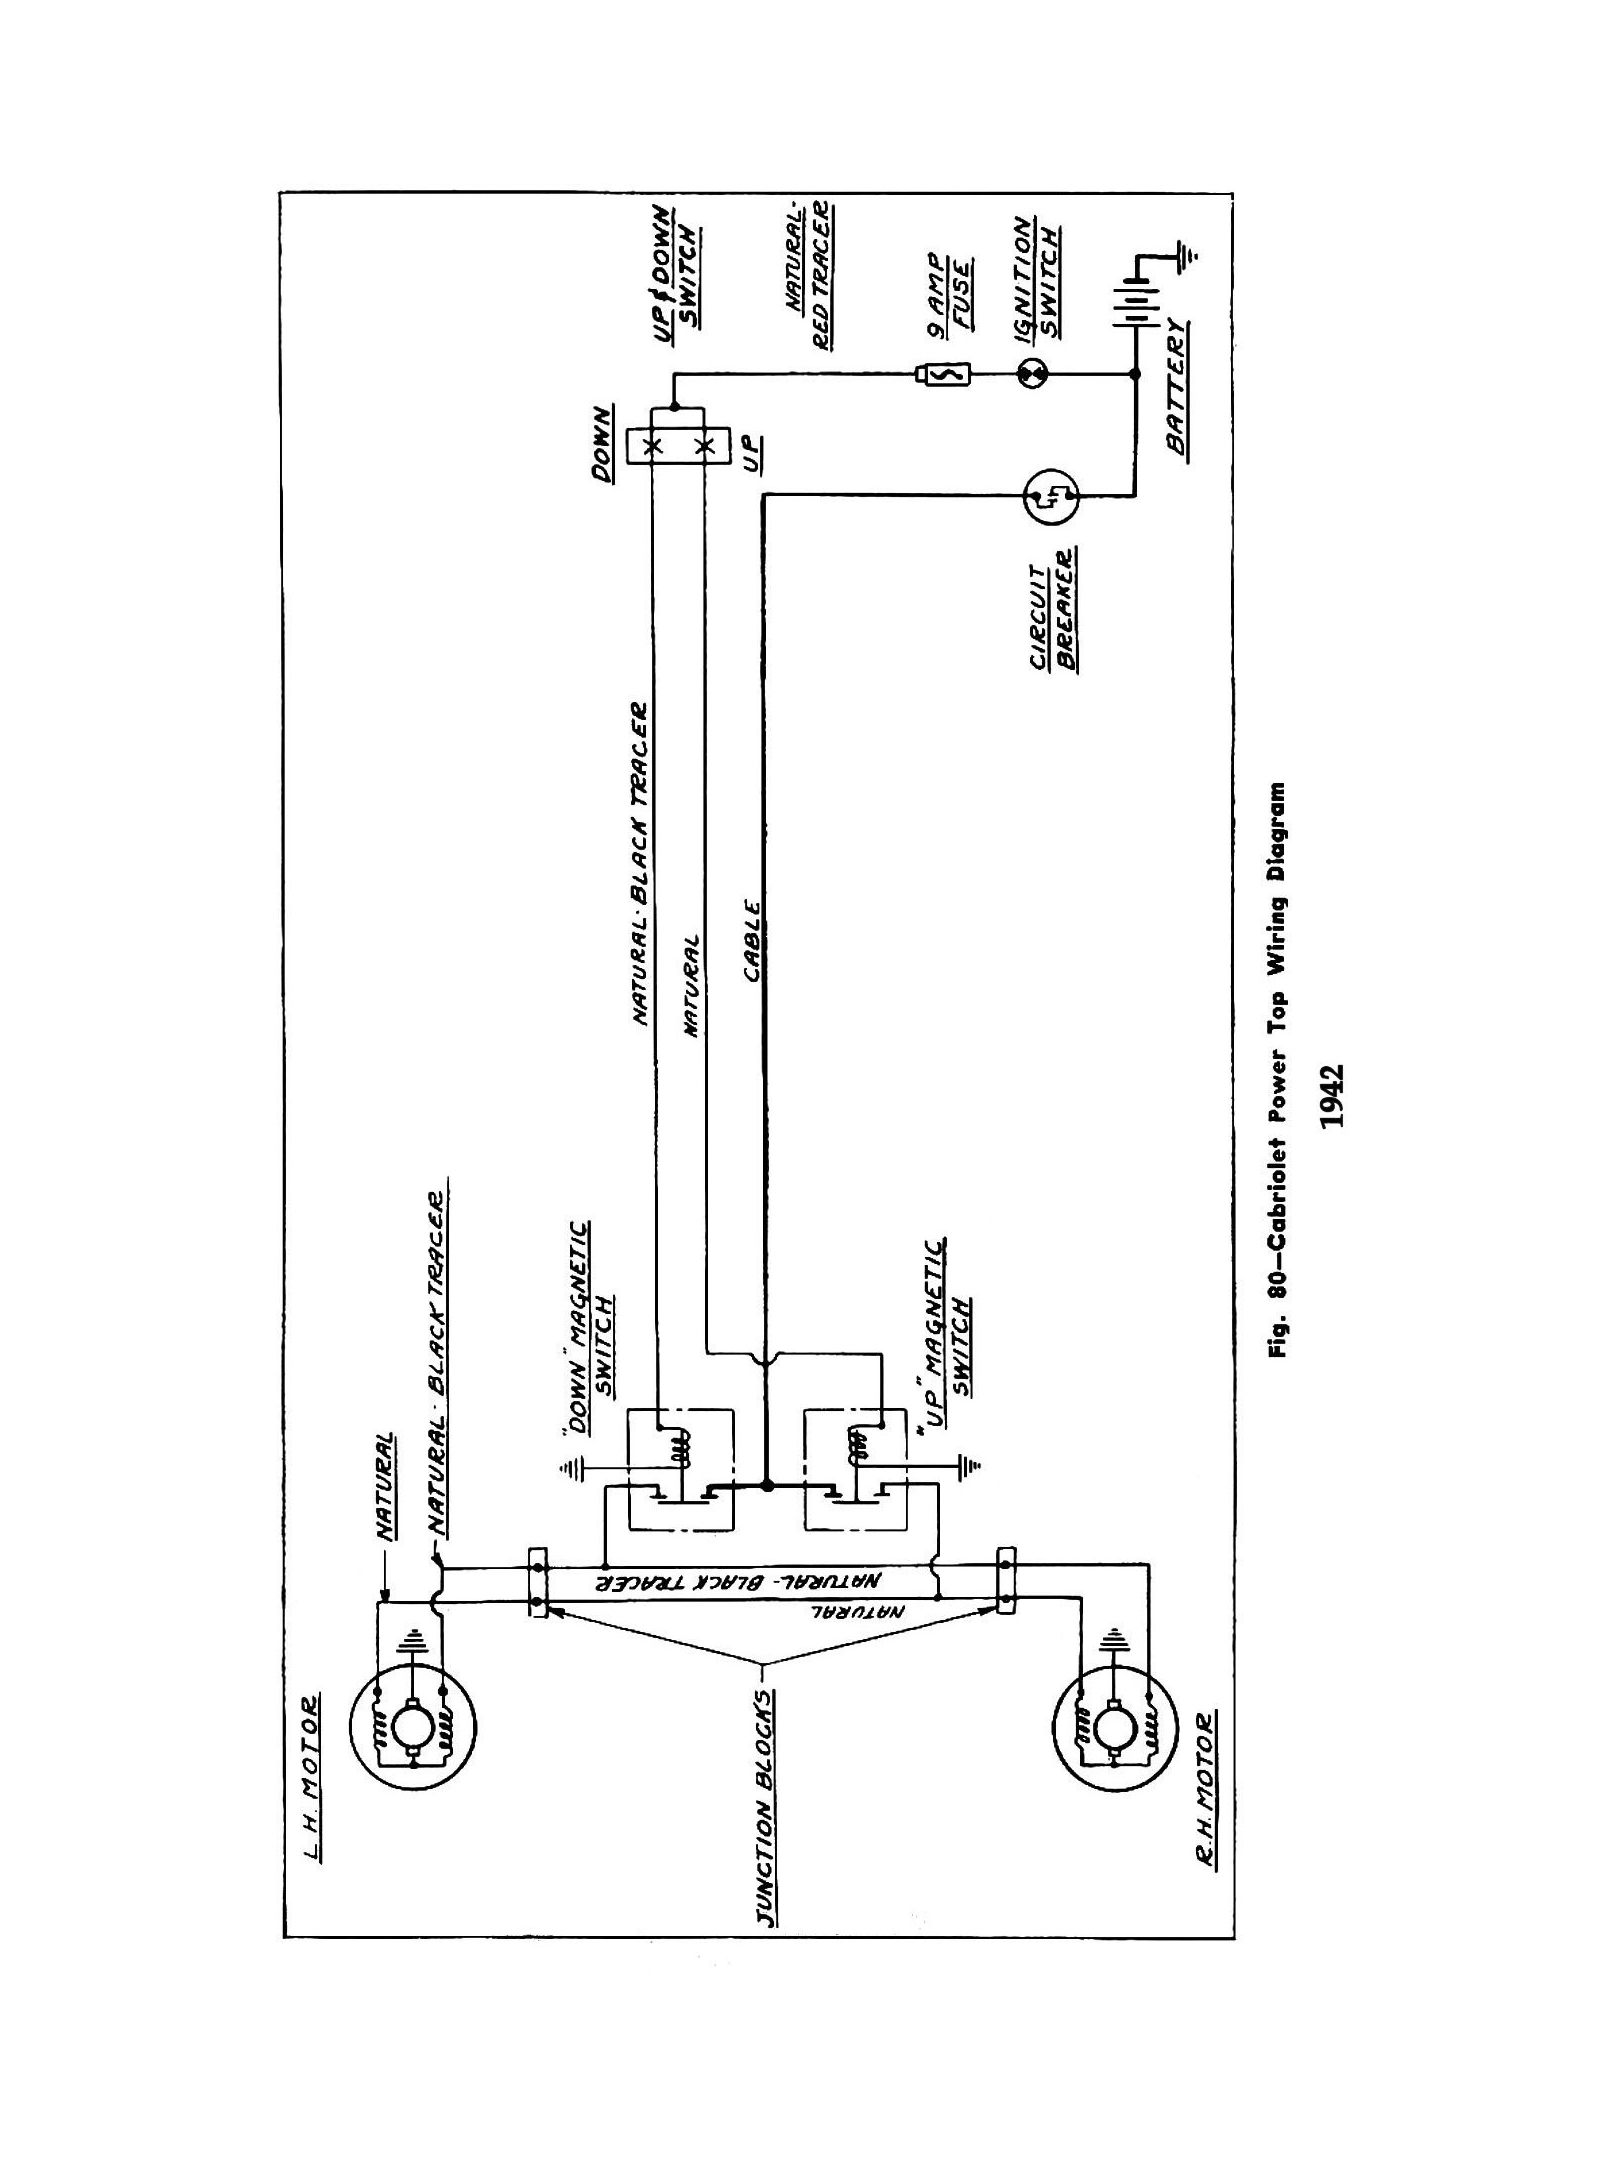 Chevy Wiring Diagrams 98 International 4700 Diagram 1942 Truck Cabriolet Power Top